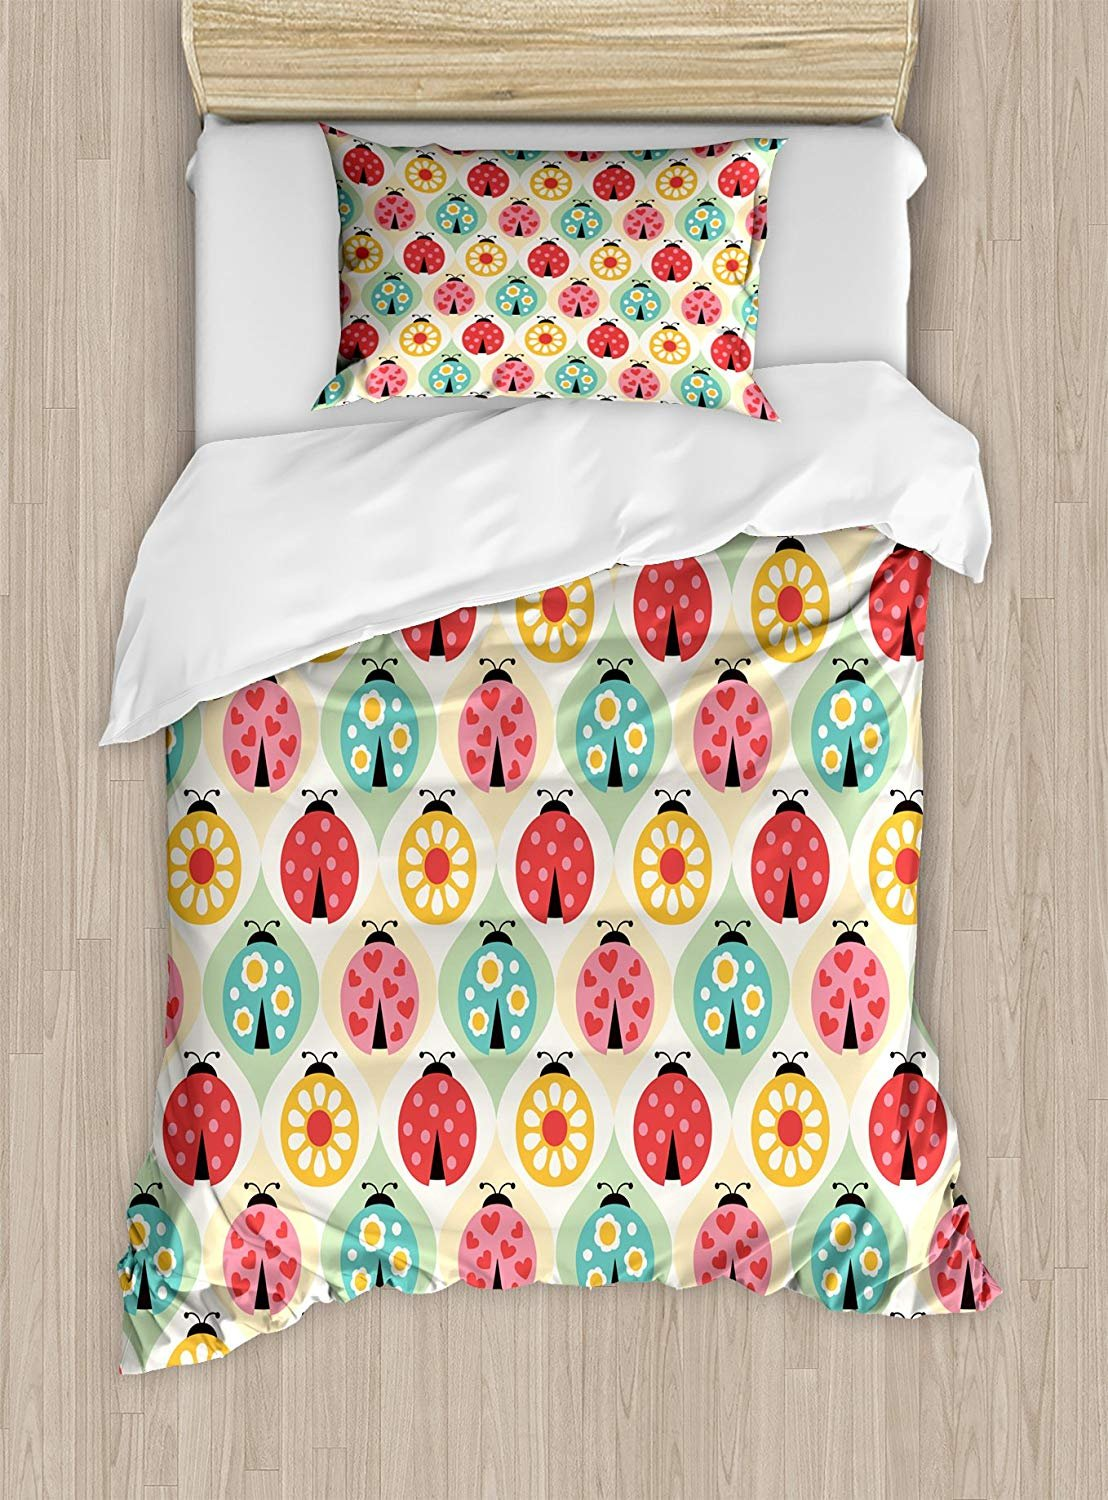 Twin XL Extra Long Bedding Set,Kids Duvet Cover Set,Ladybugs Cartoon Pattern with Retro Polka Dots Daisy Blossoms and Little Hearts Love,Cosy House Collection 4 Piece Bedding Setss